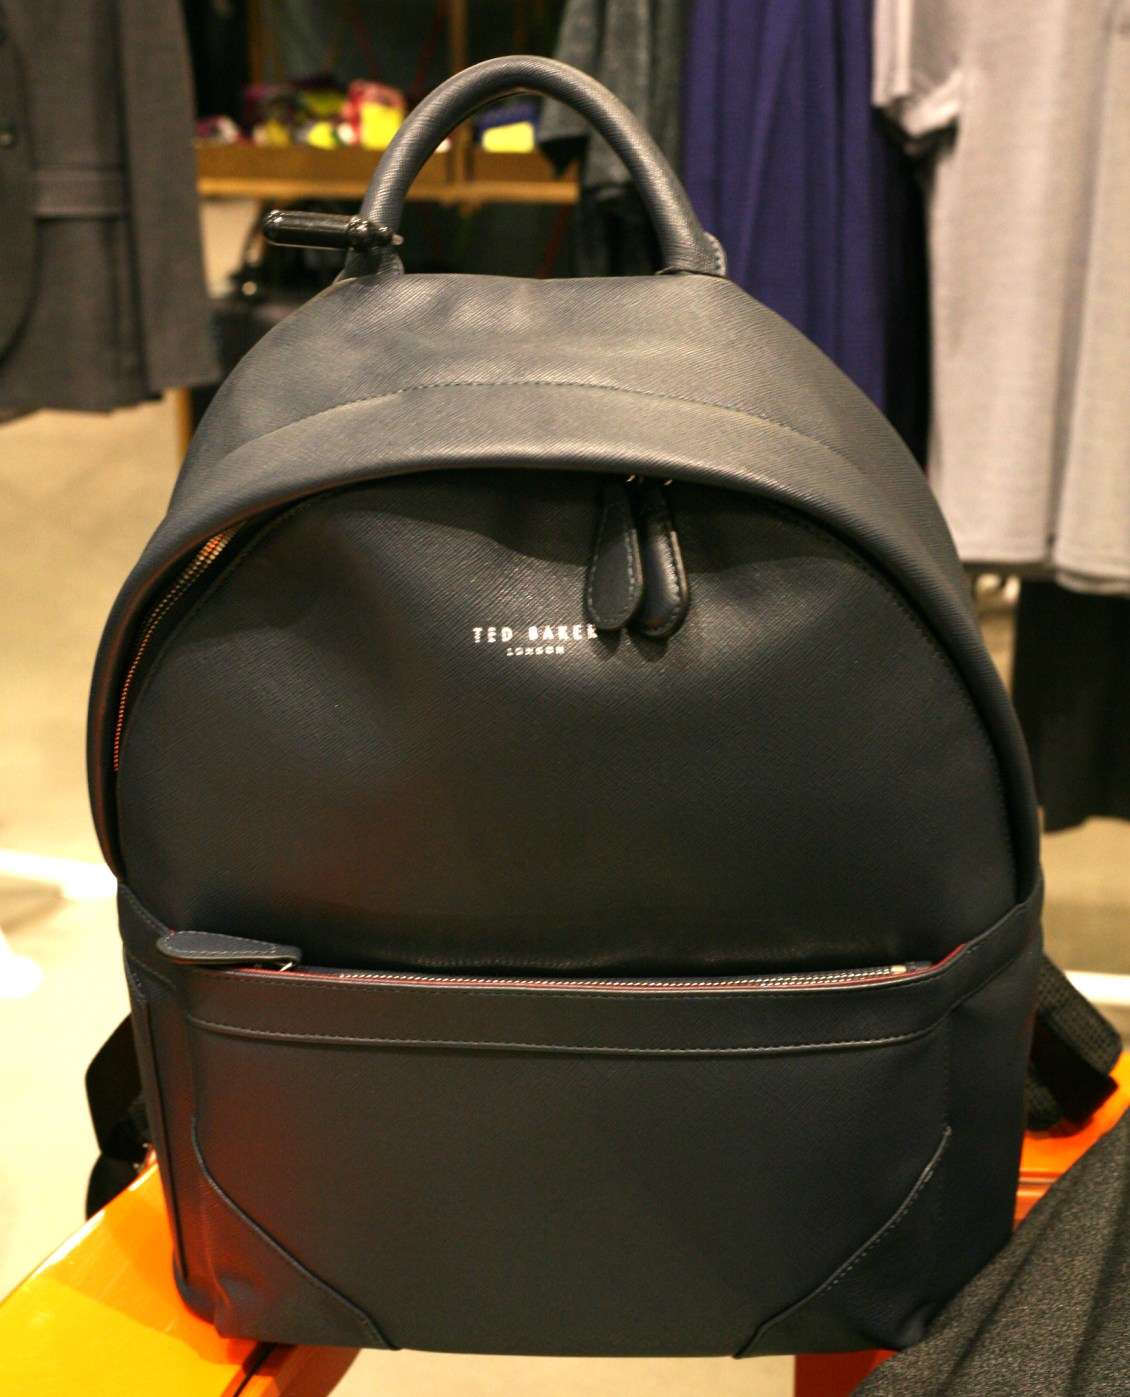 backpack-ted-baker